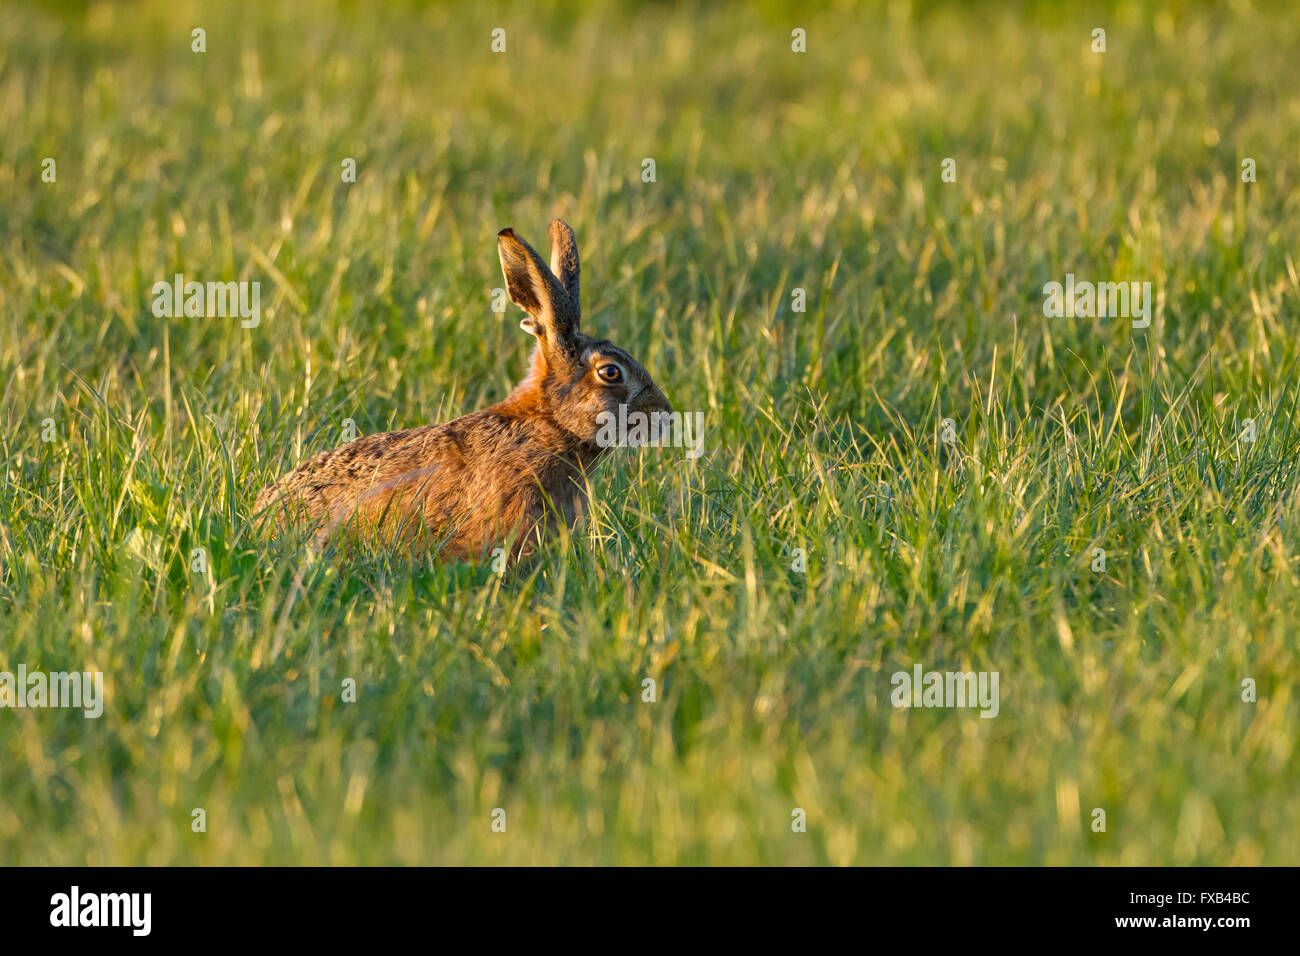 Brown Hare sitting in grass - Stock Image